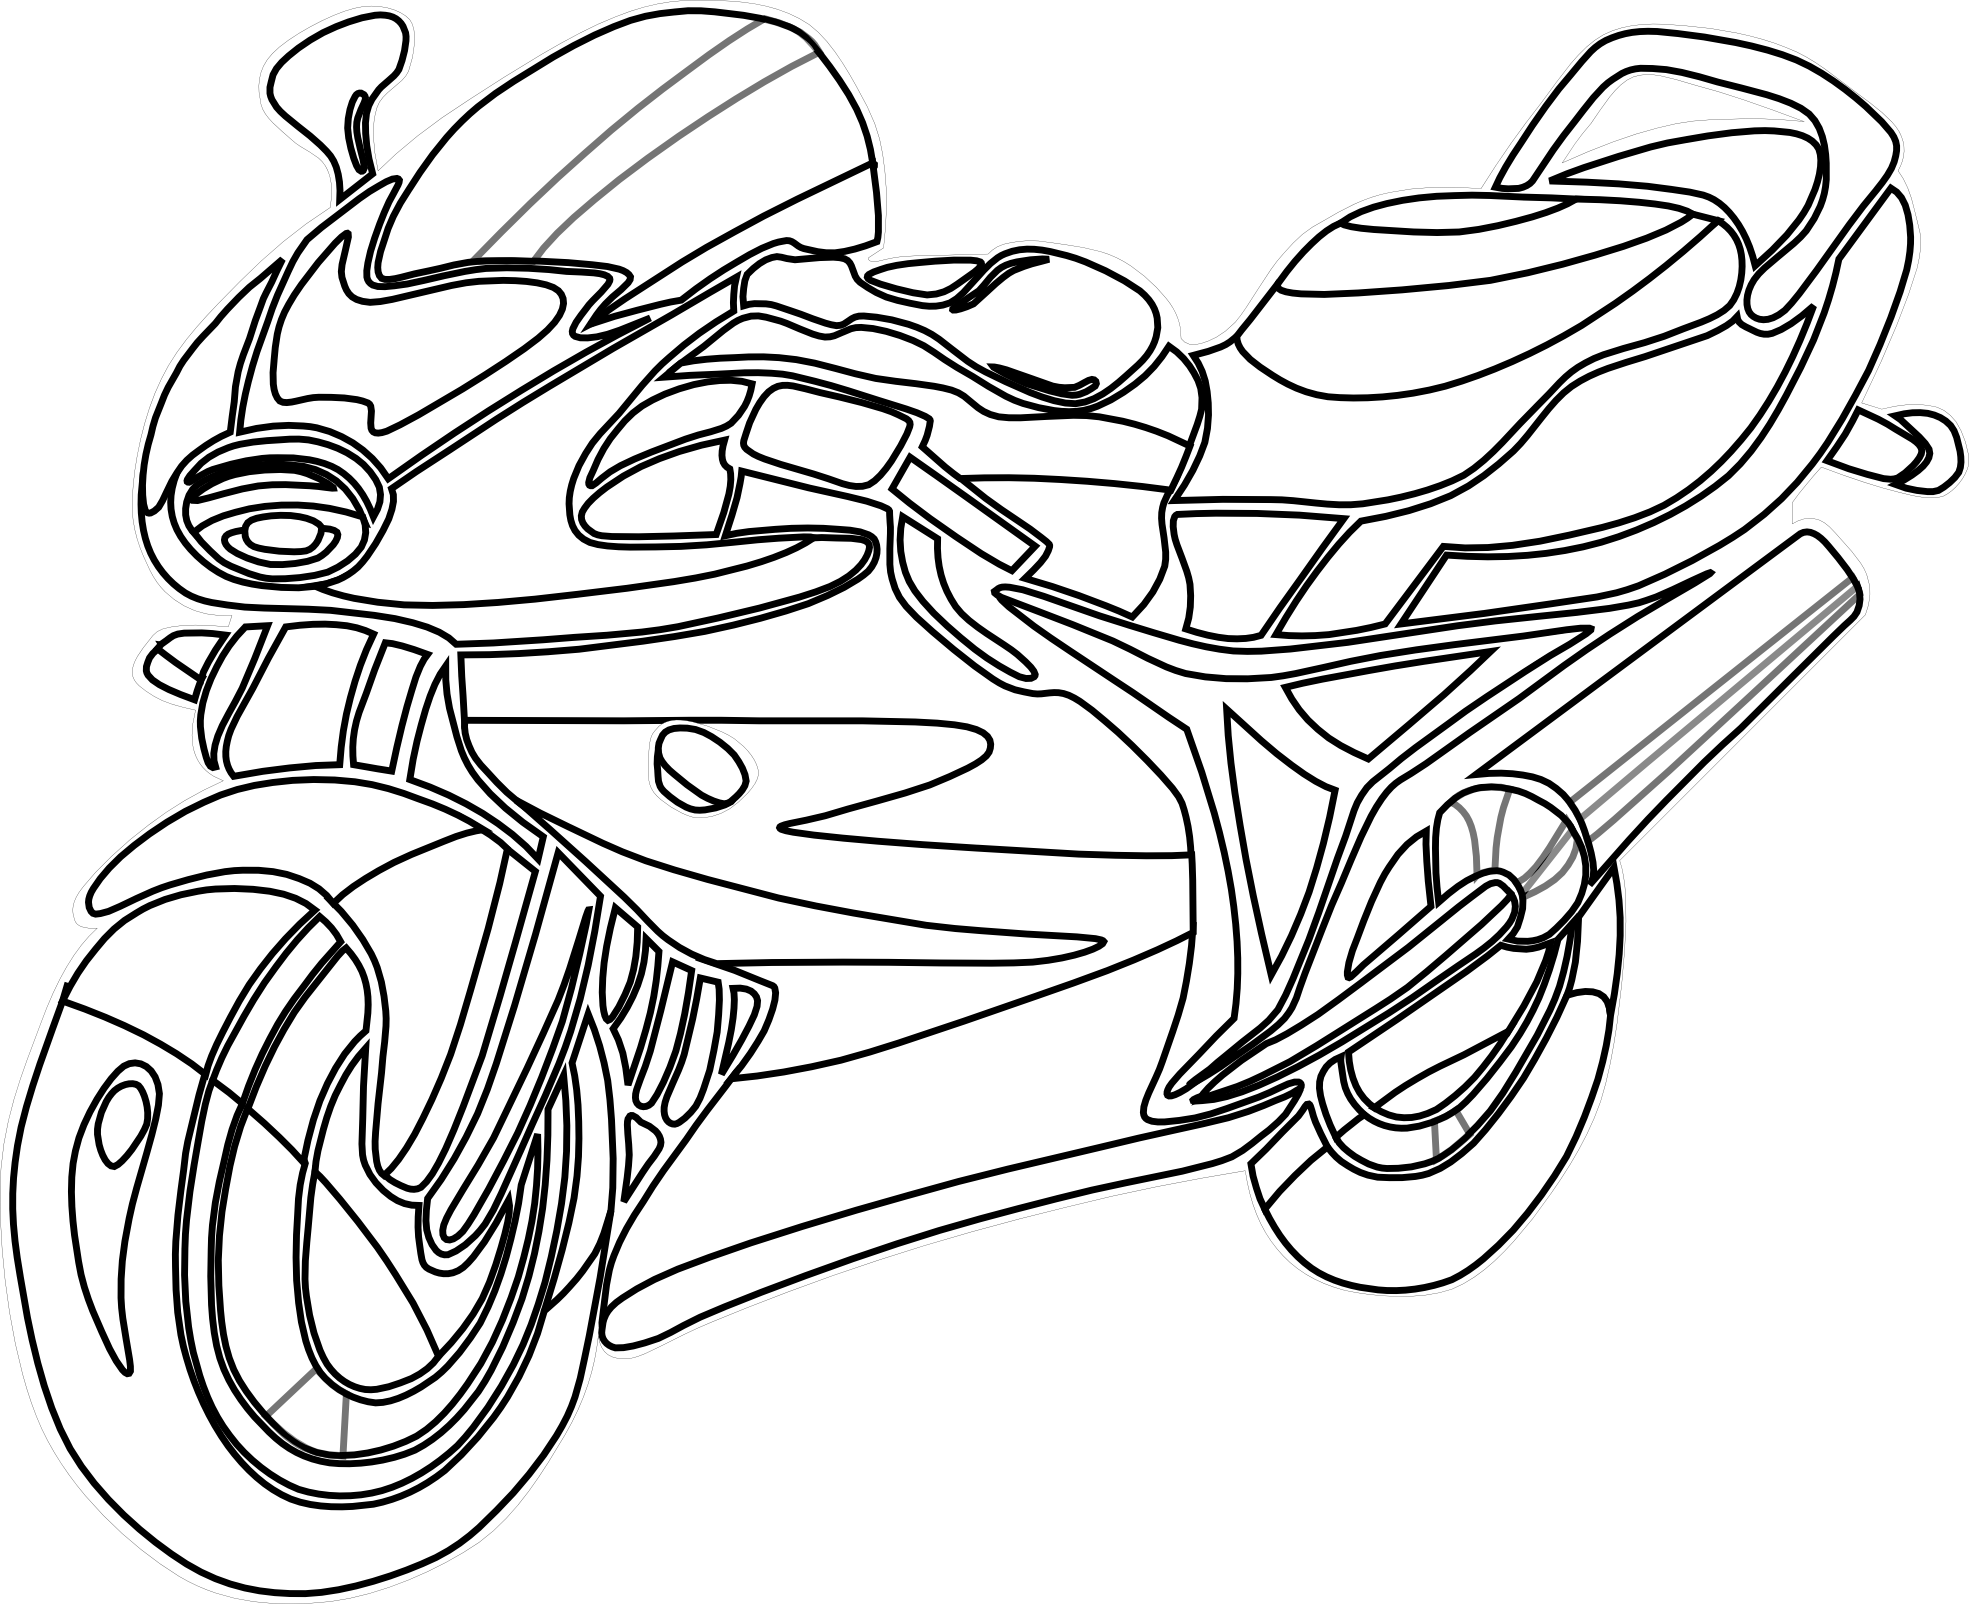 motorbike colouring motorcycle drawing for kids at getdrawings free download colouring motorbike